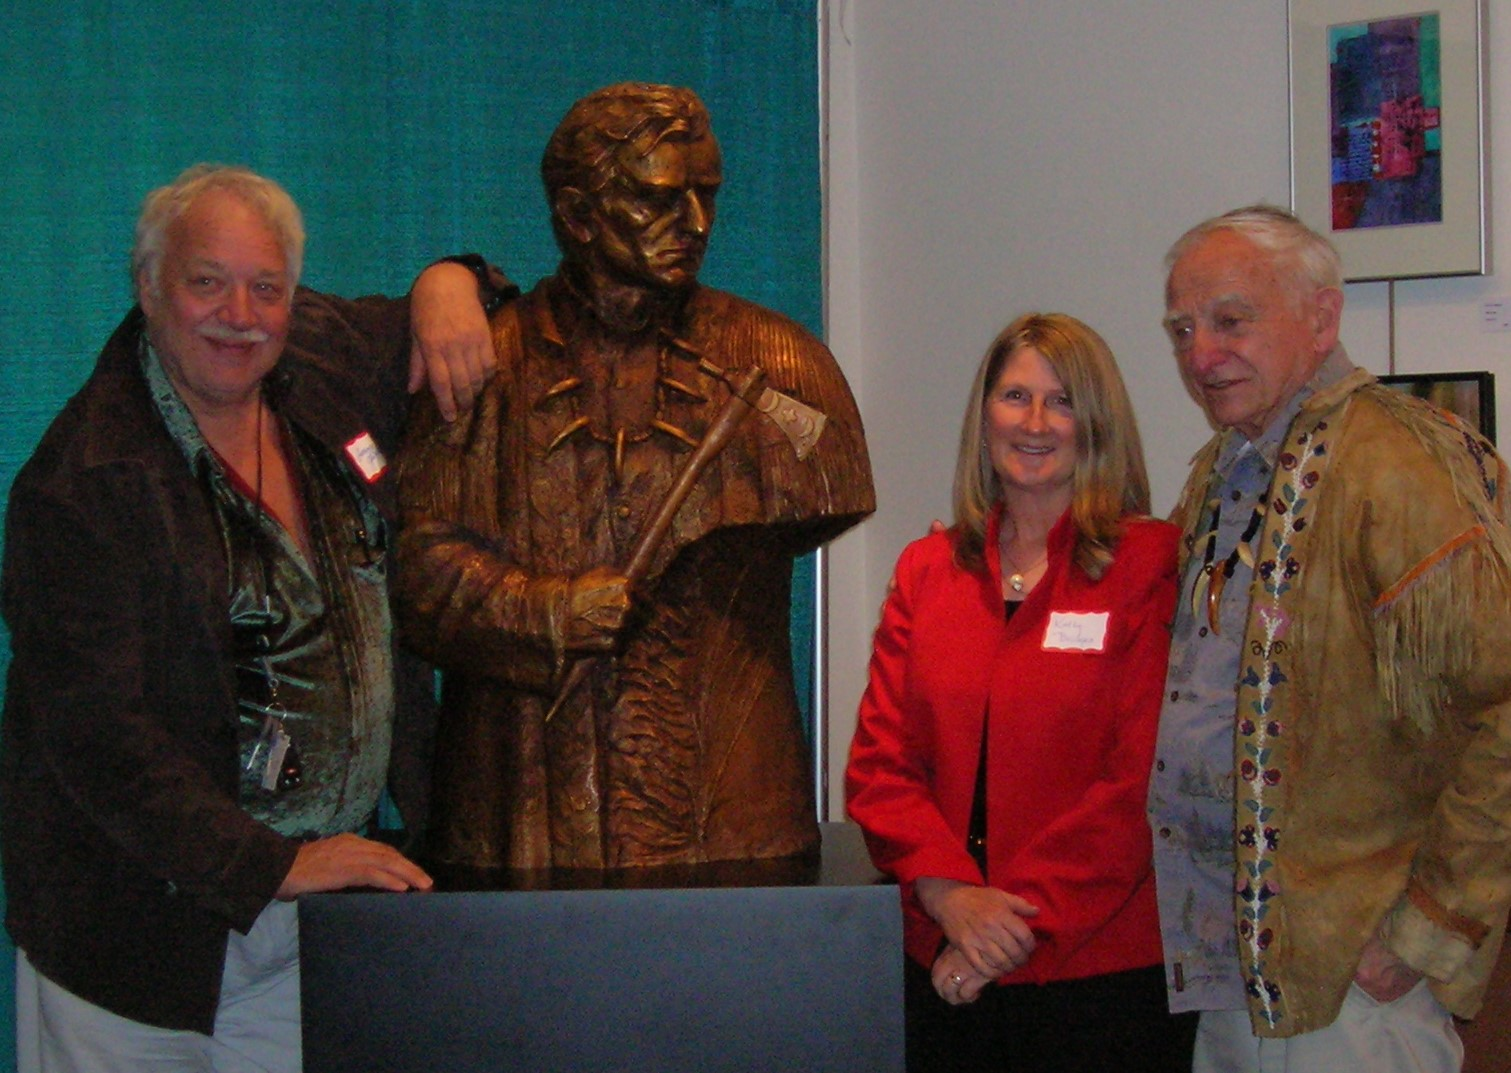 Wilbur E. Ternyik (right) honored in Florence, OR Lorenzo E. Ghiglieri, artist, presenting bronze with Kathy Bridges, The Bridges Foundation